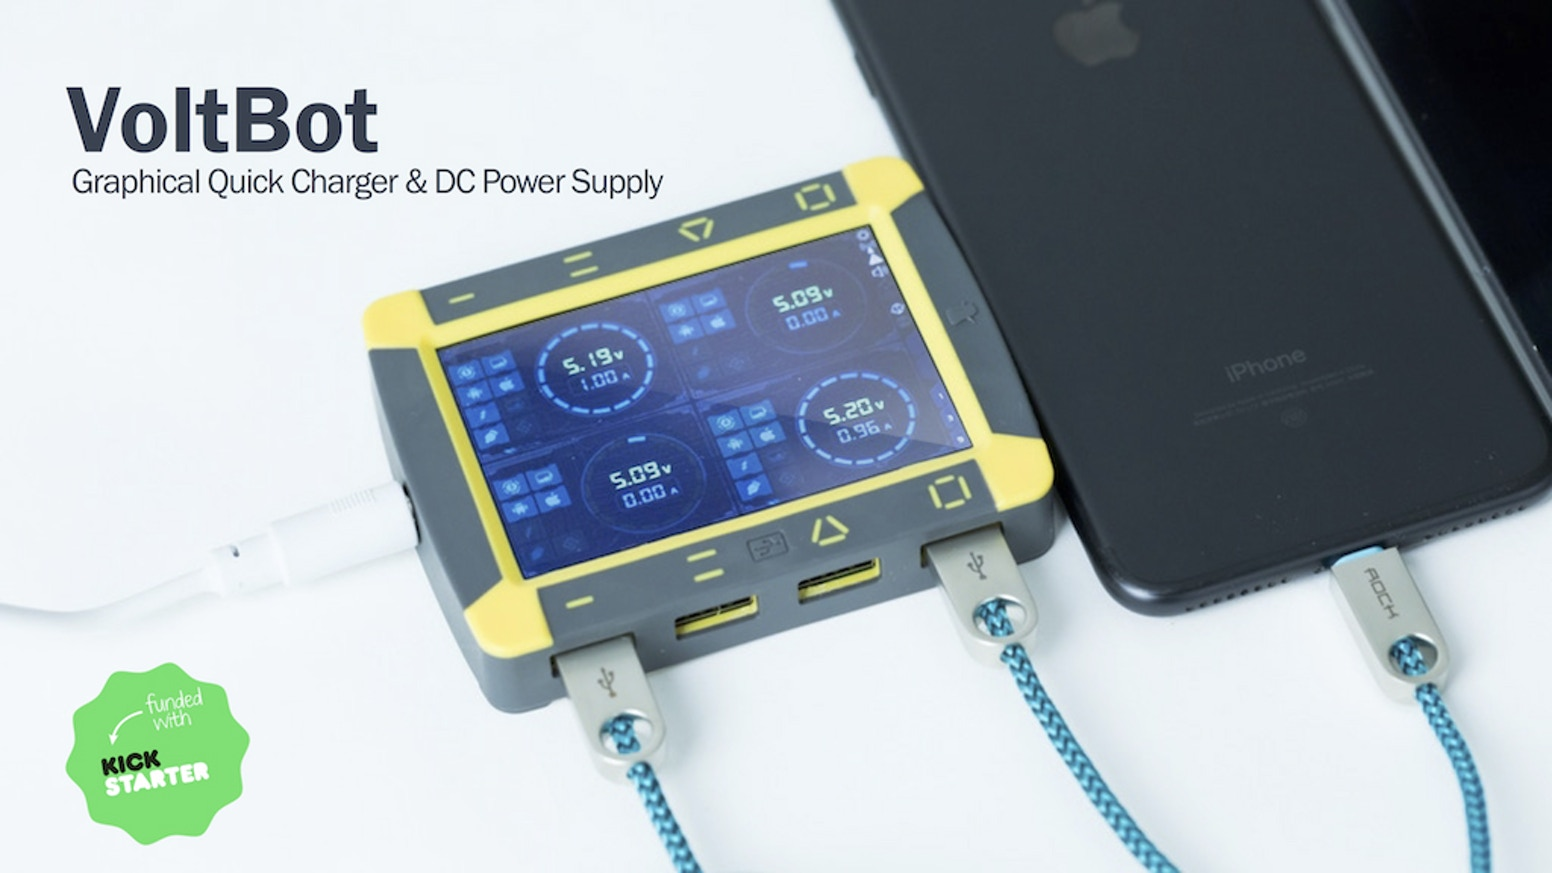 VoltBot - Graphical Quick Charger & DC Power Supply by Apple Lo ...